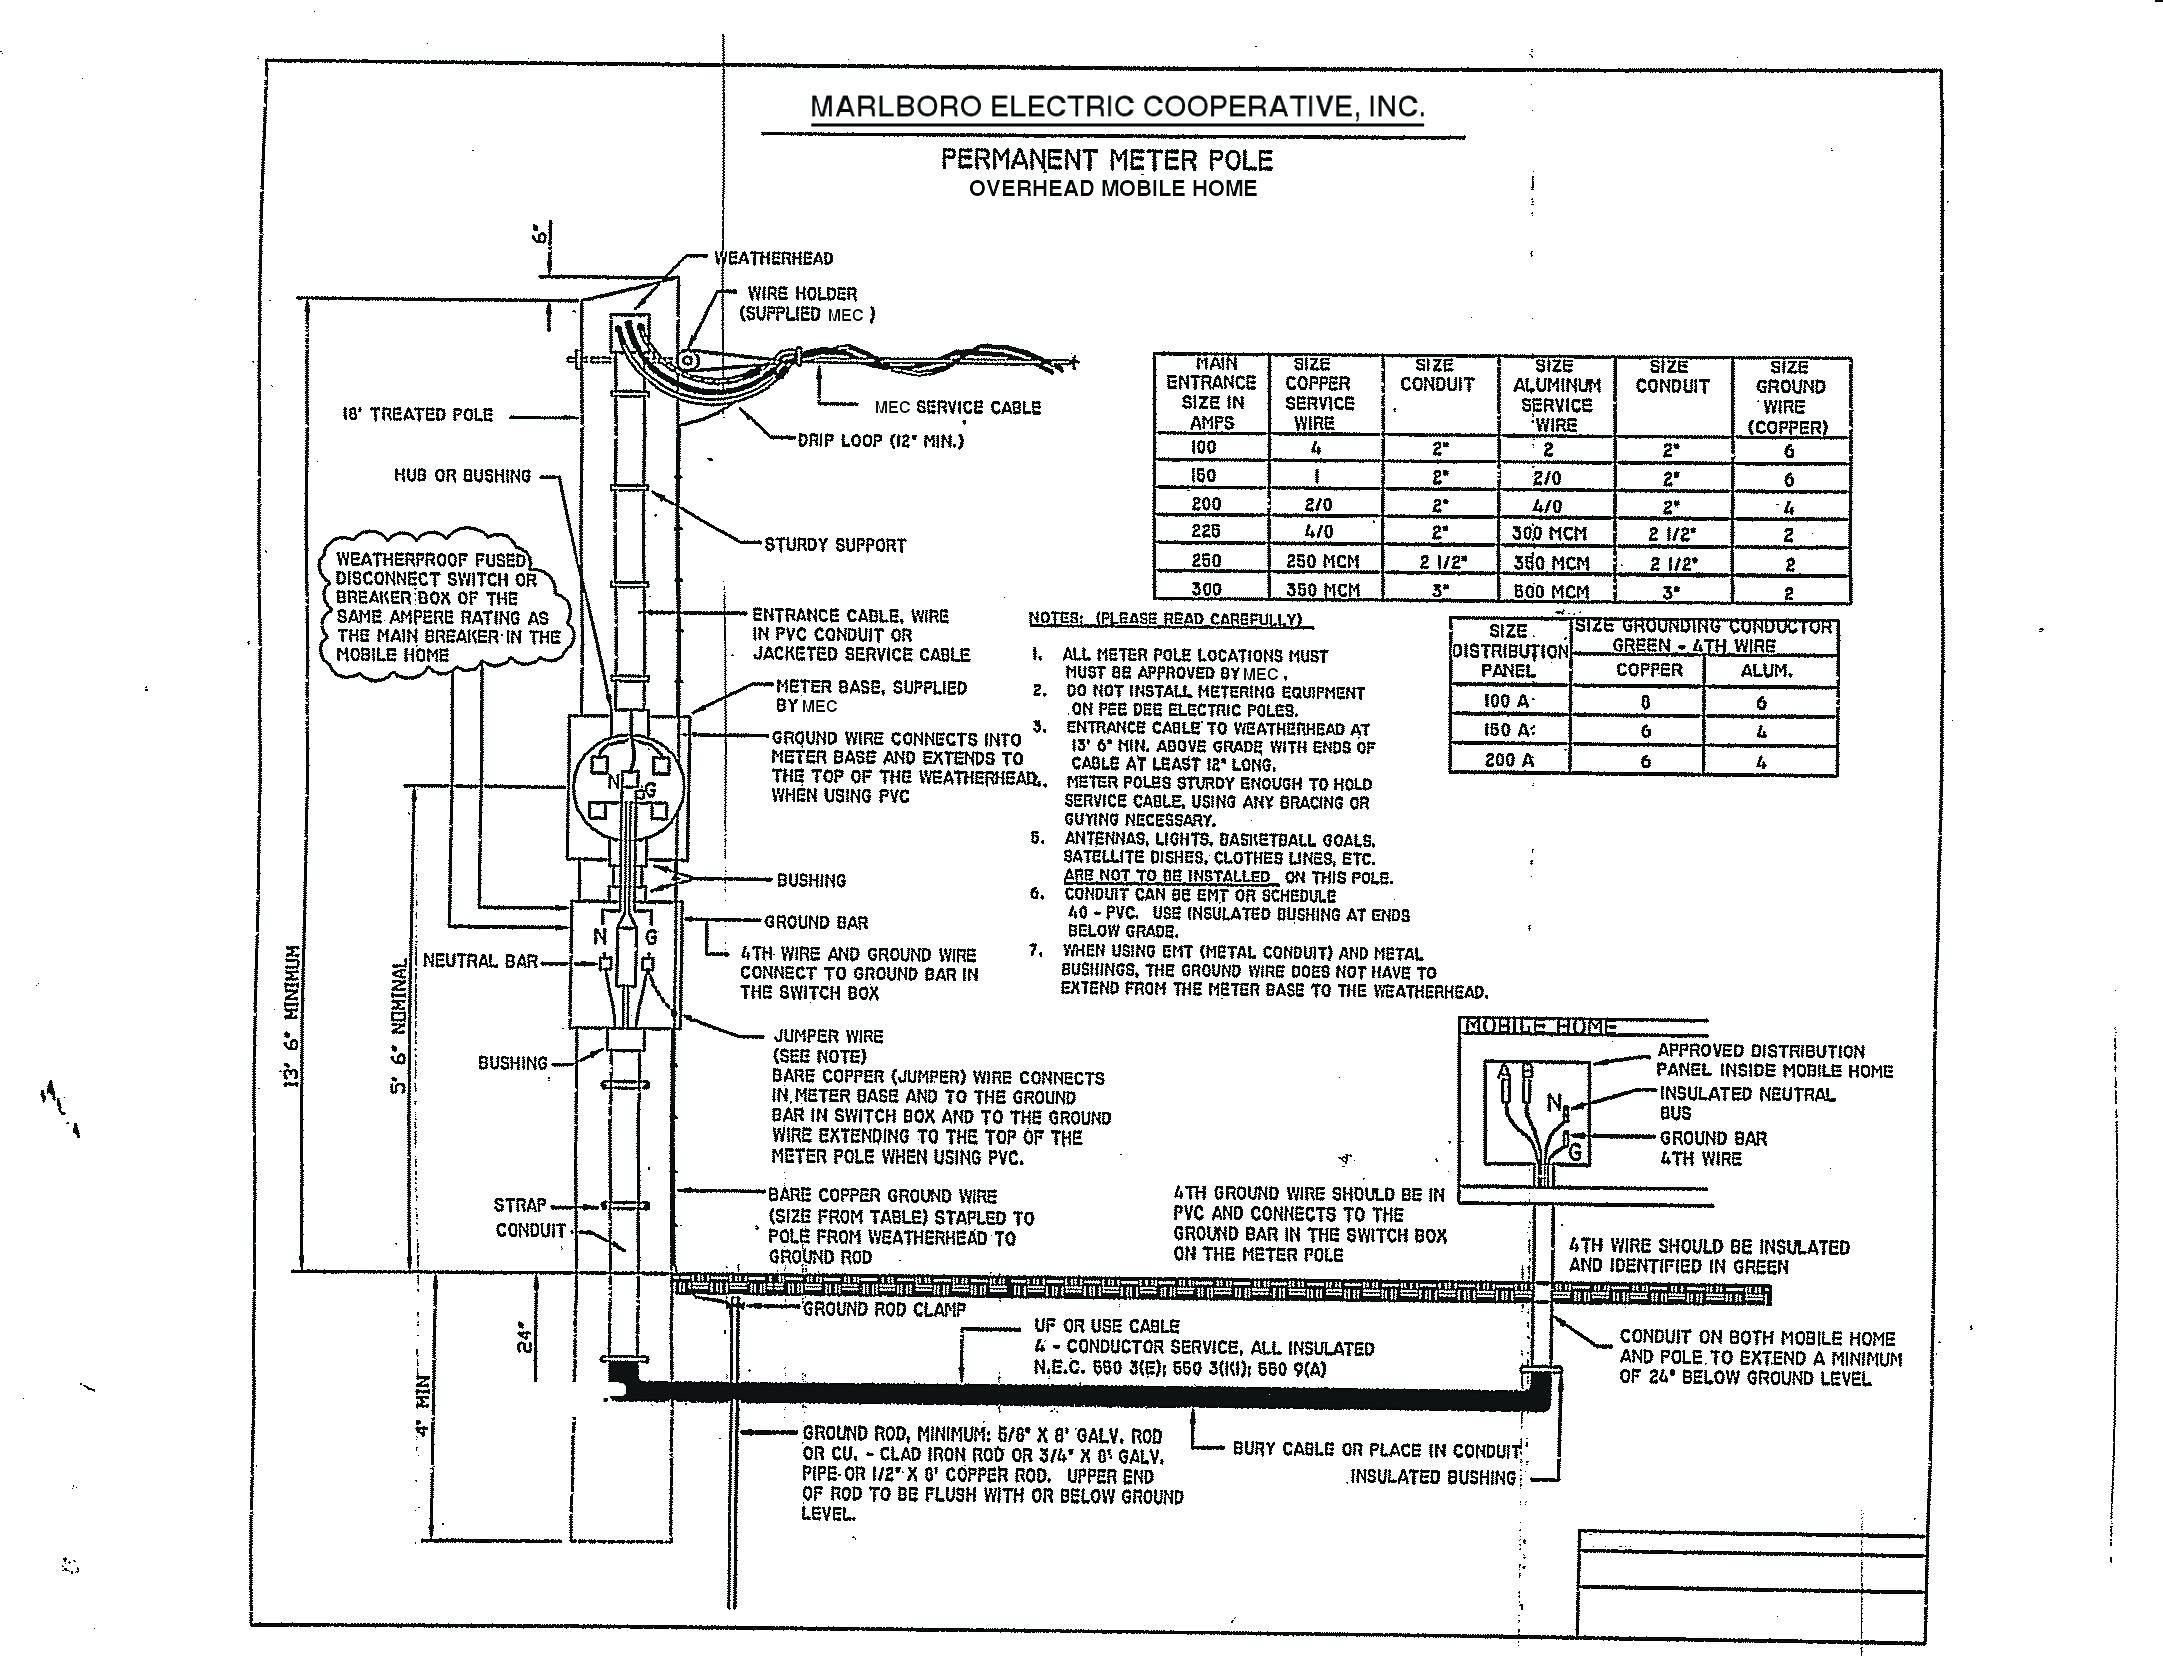 83641 clayton homes mobile home electrical wiring diagram | wiring resources  wiring resources